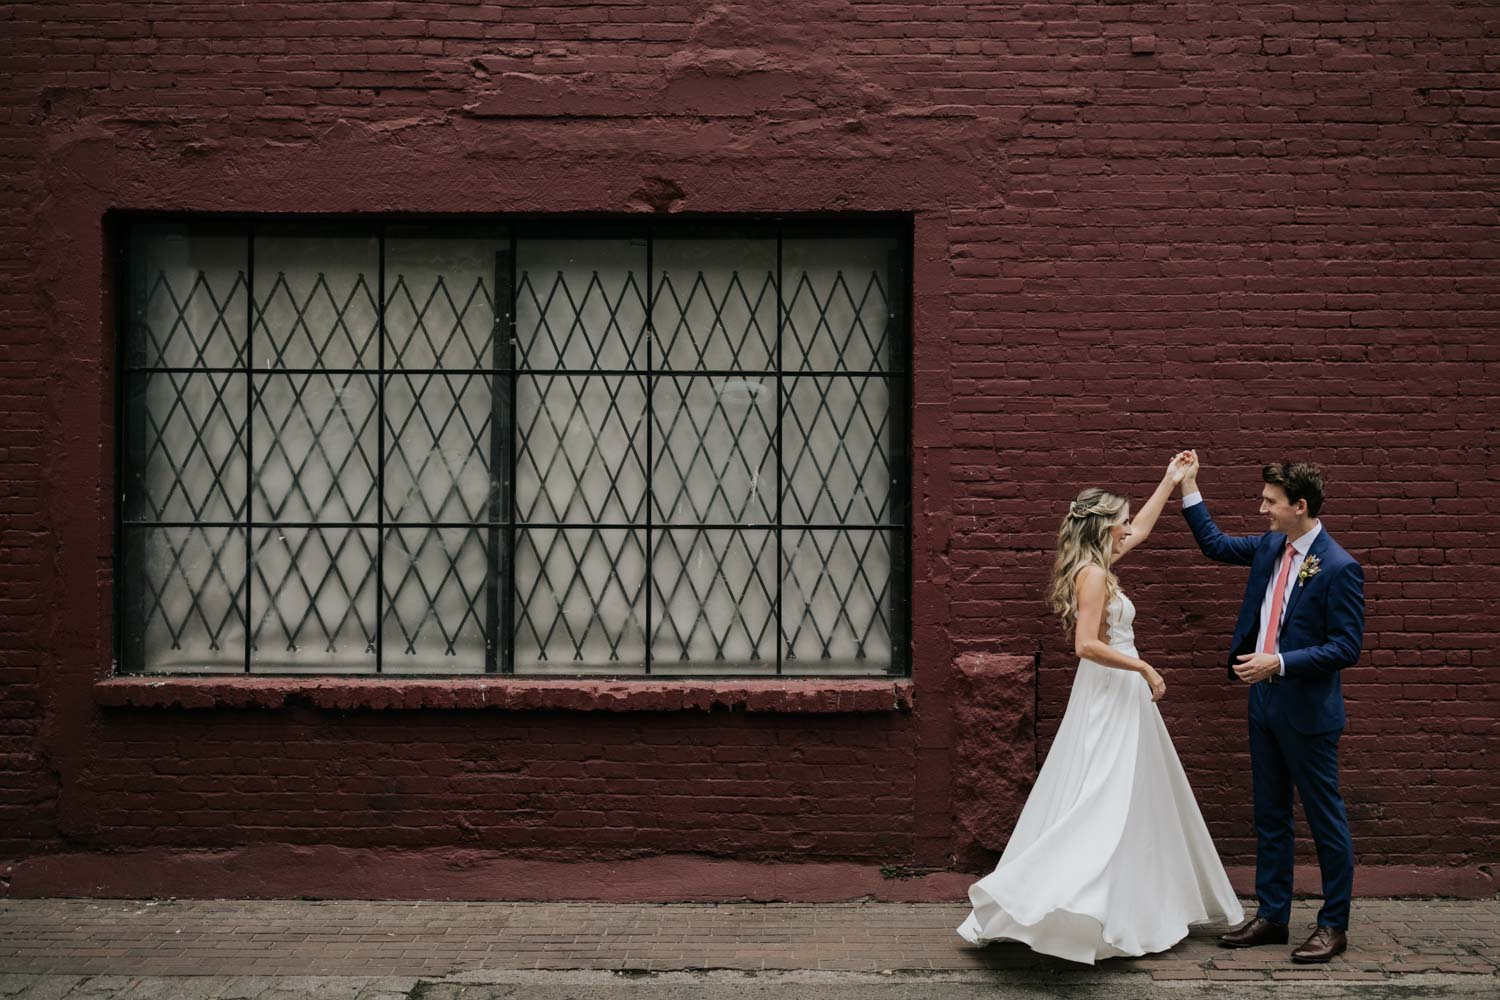 Bride and groom dance in front of red wall during wedding photoshoot on the city streets of Gastown in Vancouver